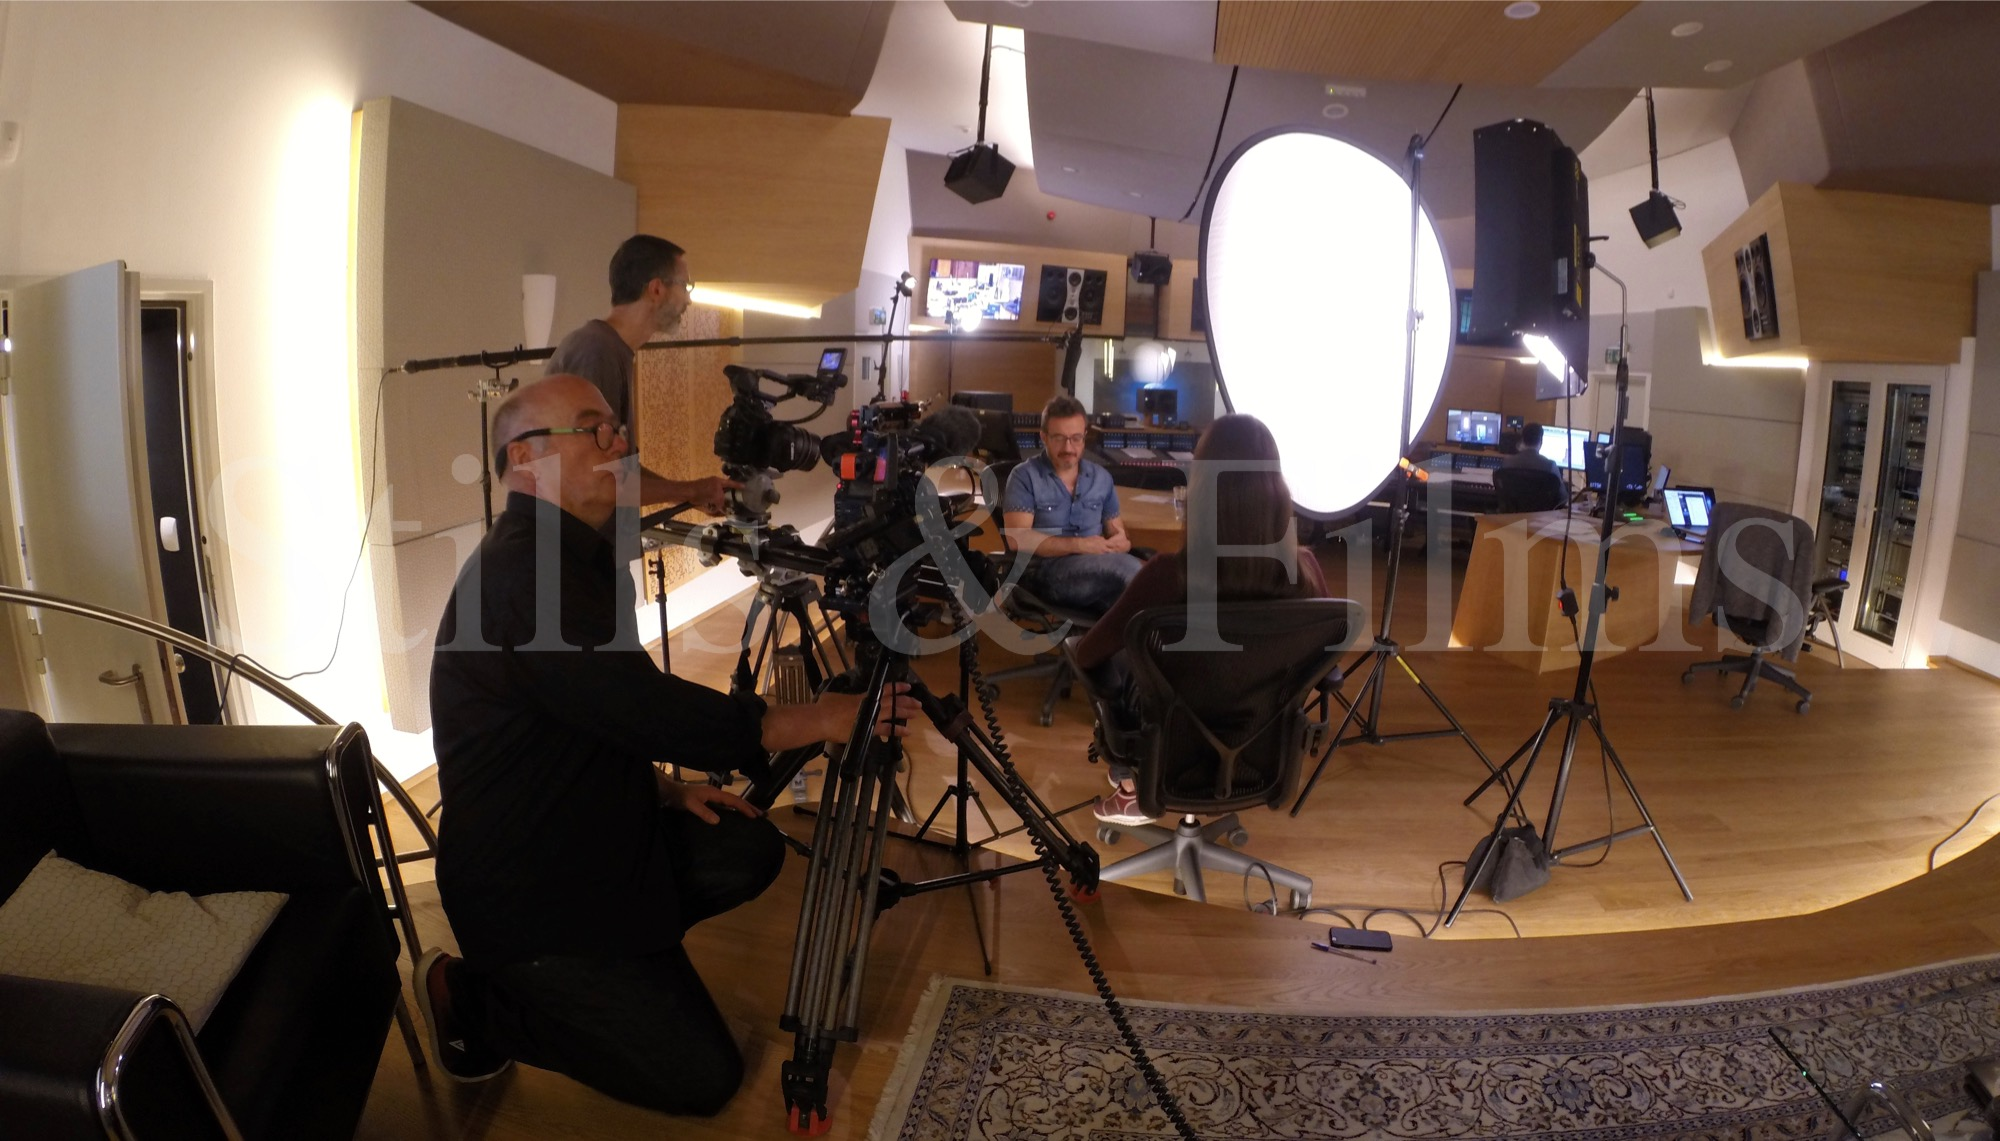 Video Crew Vienna filming at Synchron Stage